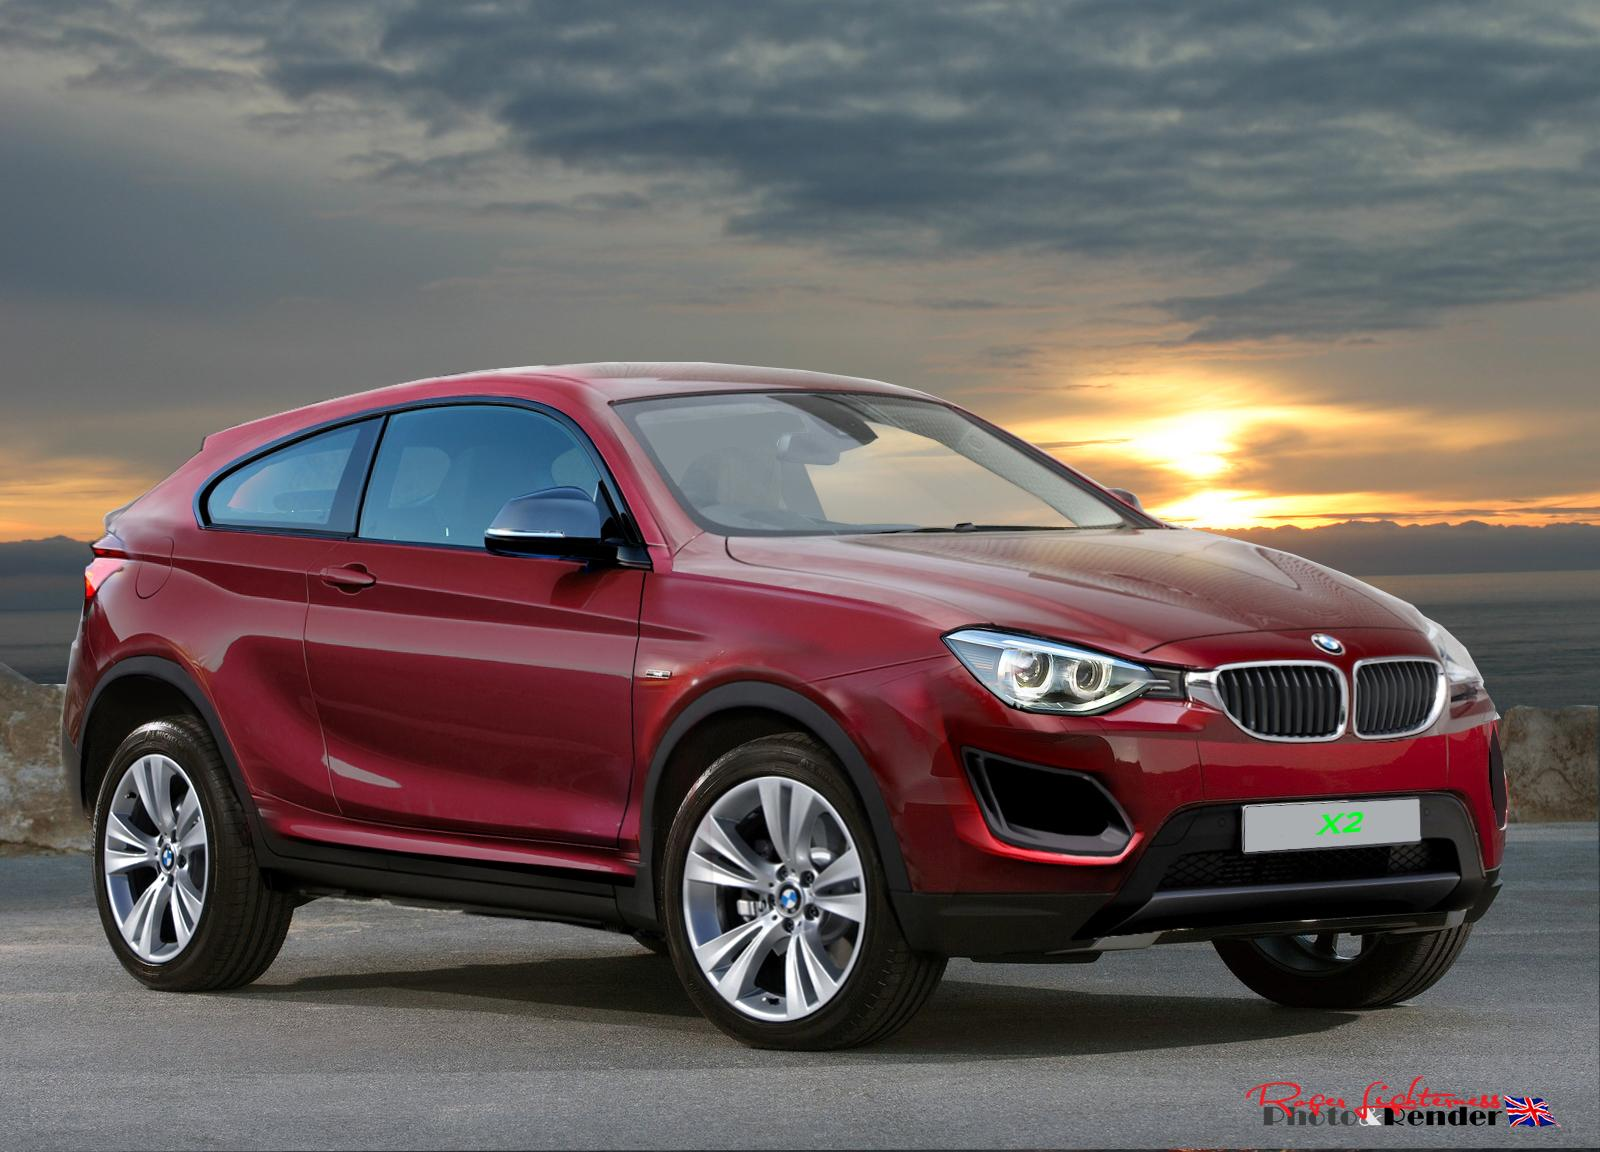 Bmw S X2 Coupe Like Crossover Set For 2017 Production And